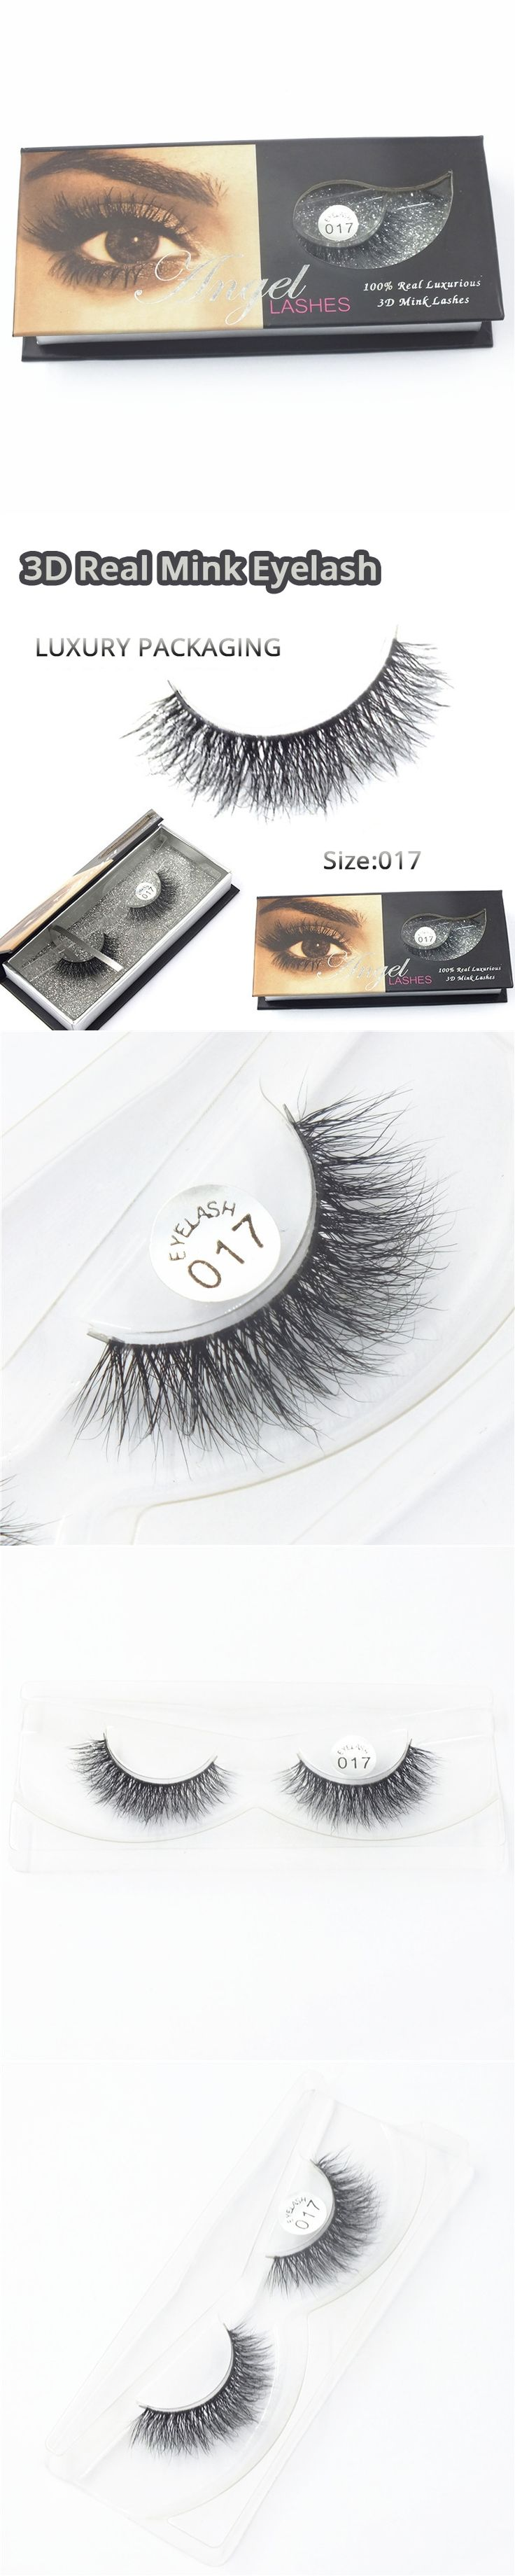 1 Pair High-Quality 3D Fashion Bushy Cross Natural False Eyelashes Mink Hair Handmade Long Eye Lashes  M-017